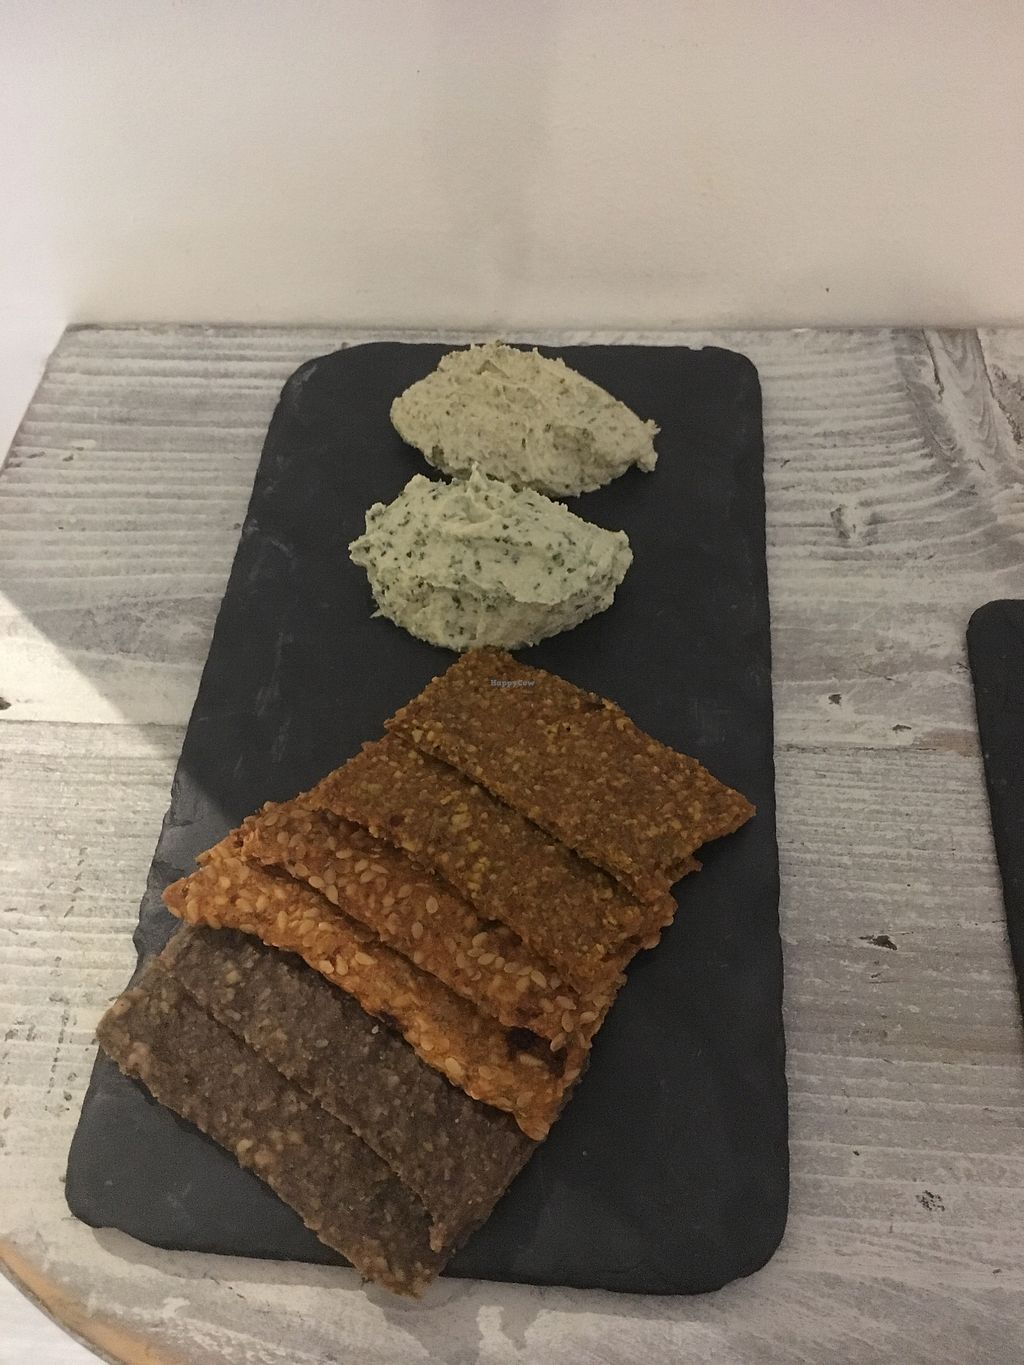 """Photo of CLOSED: Nama Artisan Raw Foods  by <a href=""""/members/profile/BecCarter"""">BecCarter</a> <br/>Cheese & Crackees <br/> January 15, 2018  - <a href='/contact/abuse/image/36686/346933'>Report</a>"""